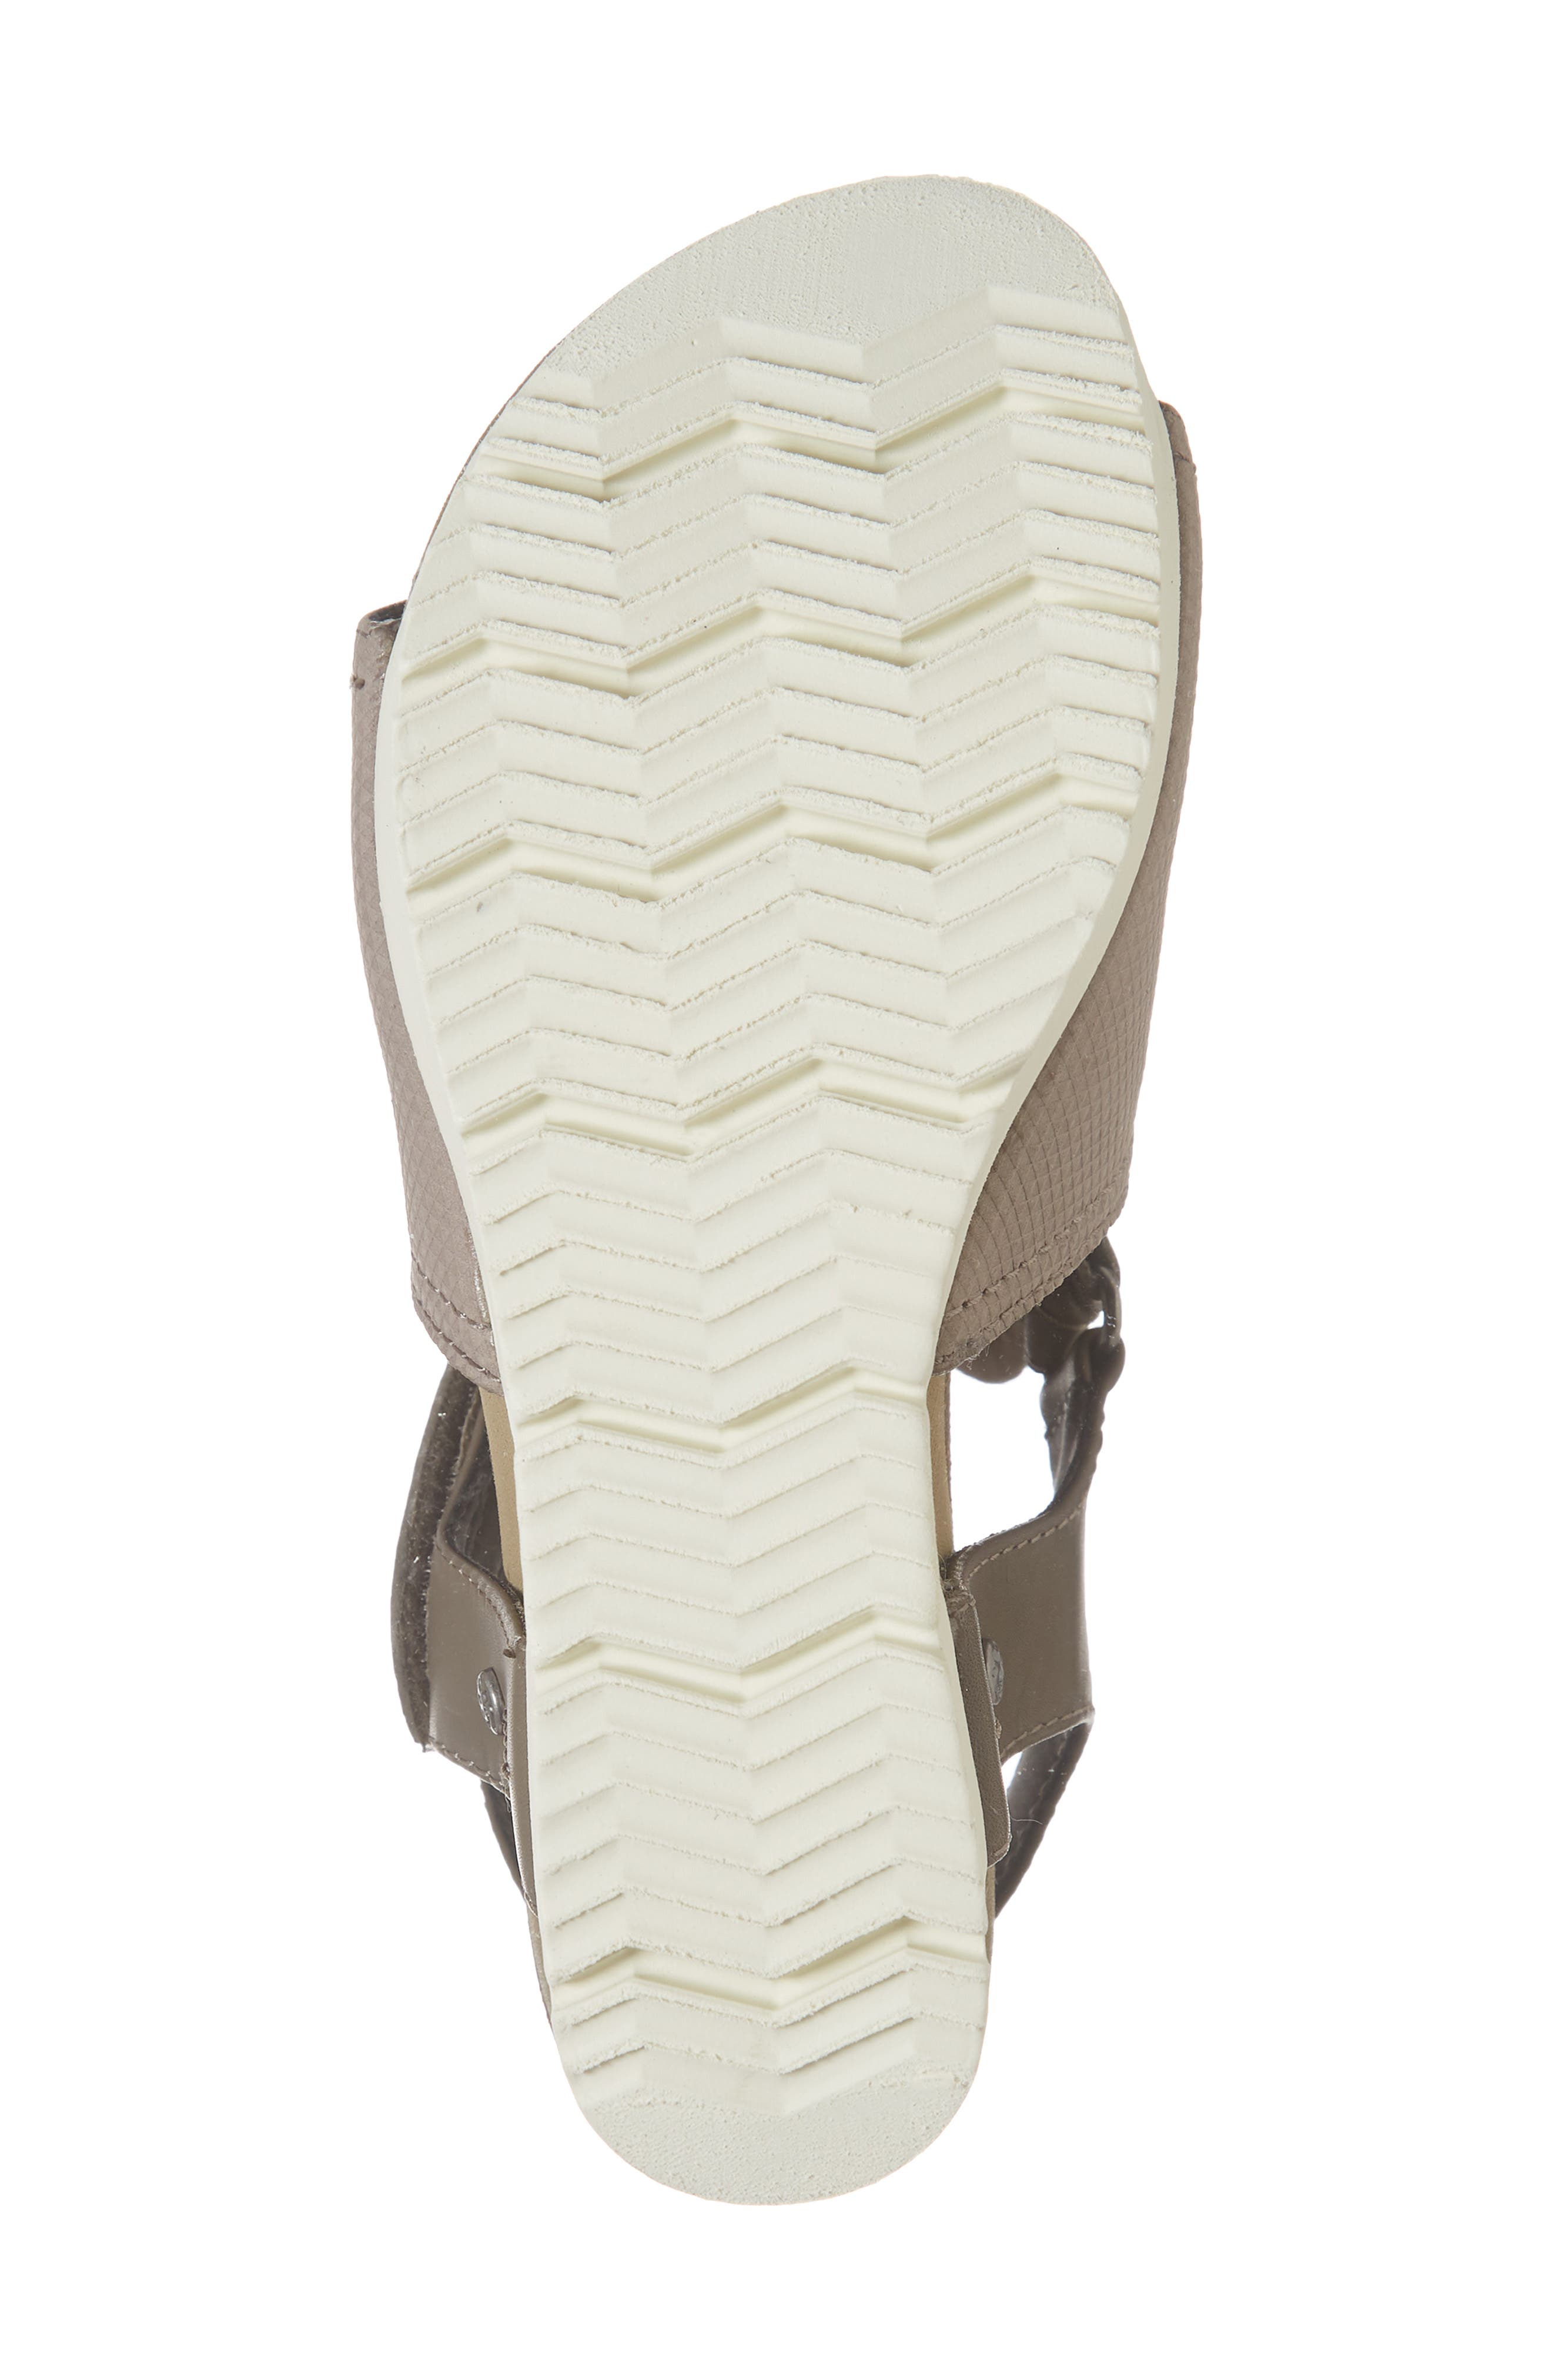 Waypoint Wedge Sandal,                             Alternate thumbnail 6, color,                             CACAO LEATHER